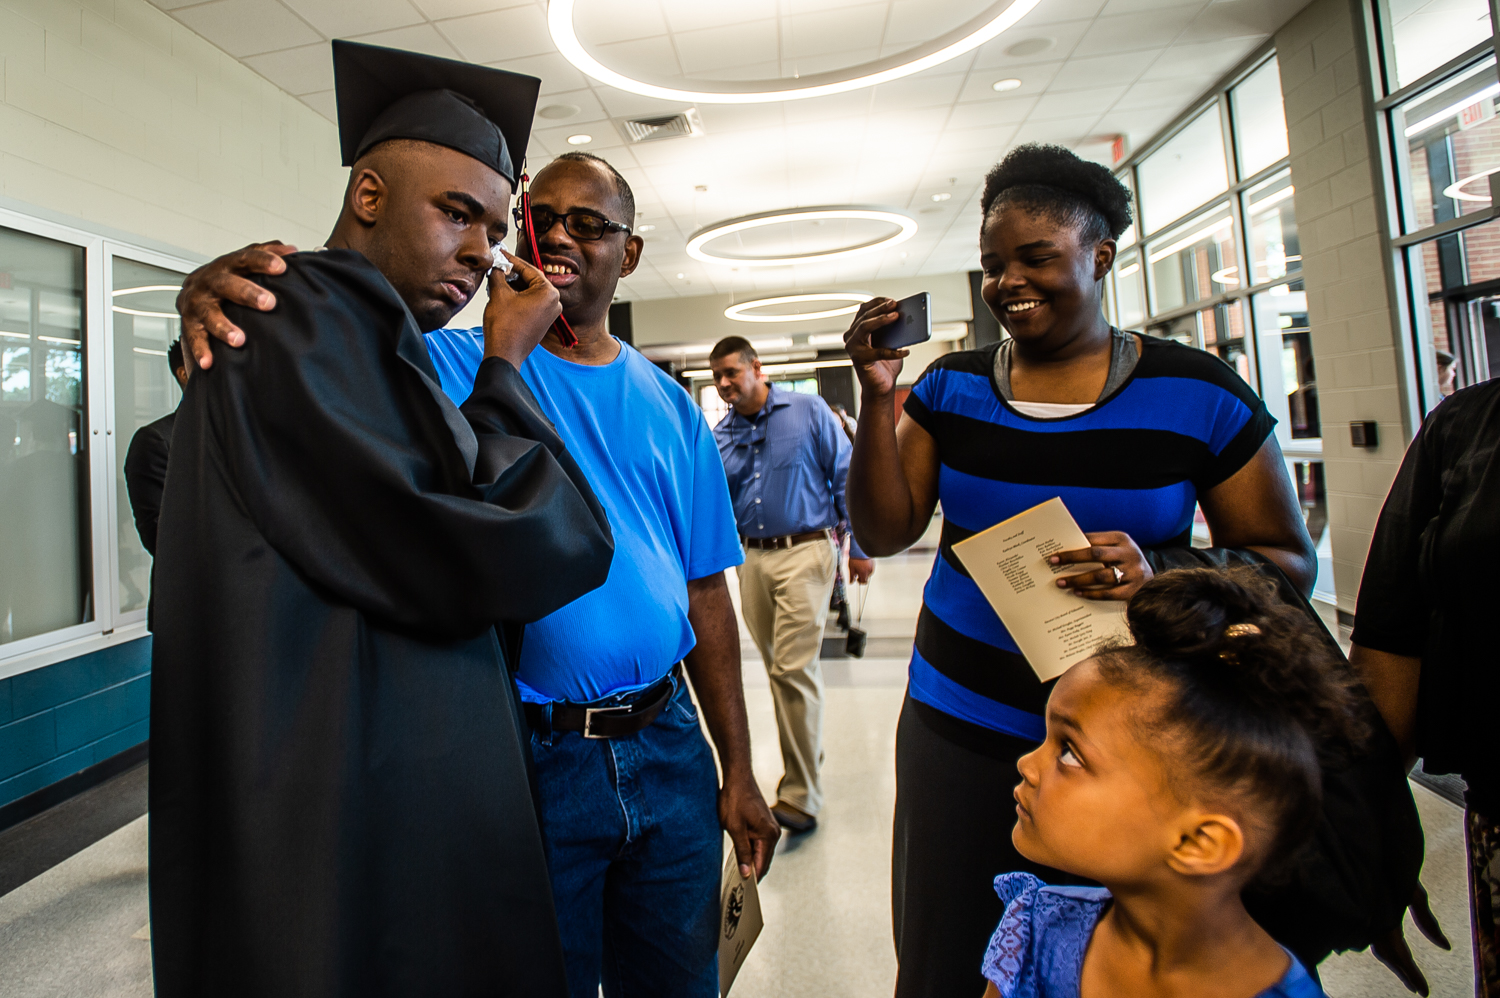 """Family greets an emotional Anthony Jacquez Robinson after he graduated Decatur High School on May 16, 2019, in Decatur, Ala. """"He talks softly, but is a leader and the big man on campus,"""" said lead administrator Mary Hillis at Decatur High Developmental. Robinson, who is classified as developmentally delayed, is leaving Decatur High Developmental, but not to be confined to a life at home. He's one of the first students selected to participate in the Project SEARCH program at Decatur Morgan Hospital. The program, which started in 1996 at Cincinnati Children's Hospital Medical Center, secures employment for people with disabilities."""